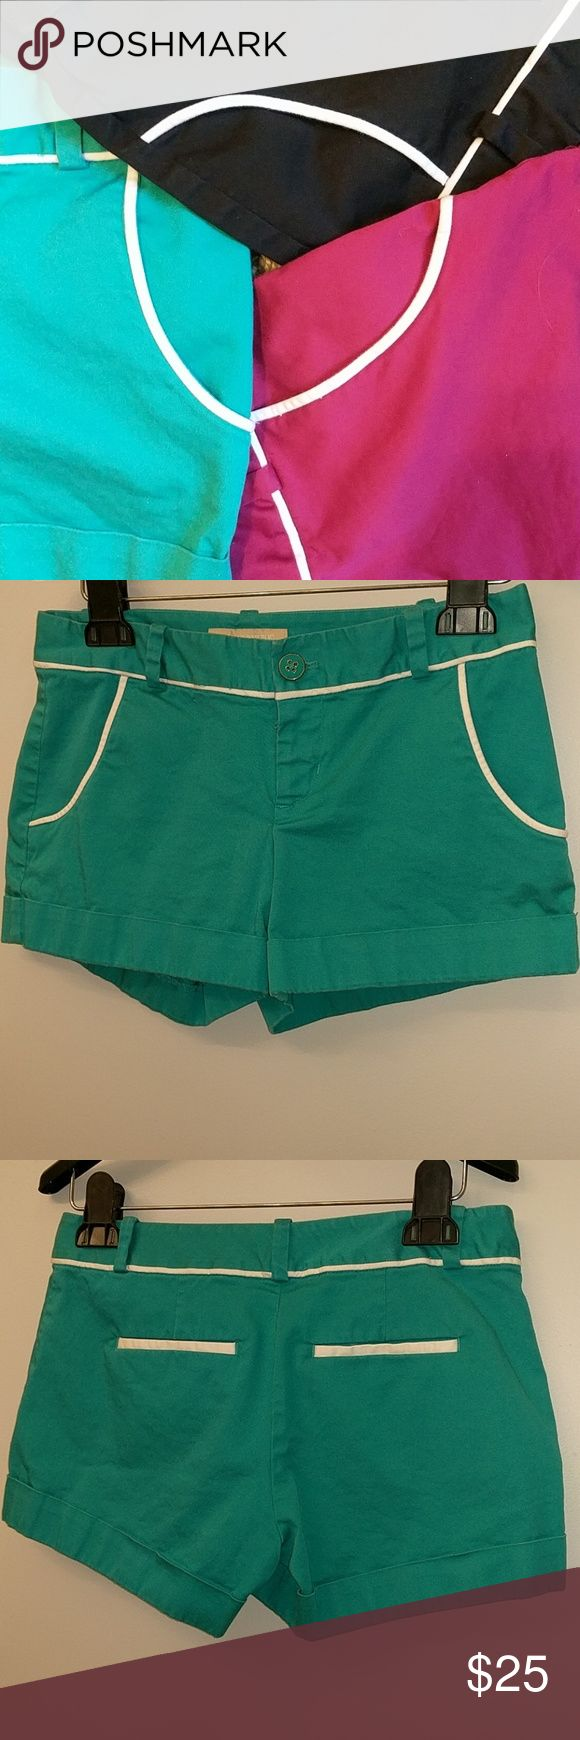 Banana Republic Ryan Fit Teal Shorts Banana Republic Ryan Fit teal shorts.  Front pockets. I have 2 other colors available.  I tend to have problems finding pants/shorts that fit because there is often a gap in the back.  These fit me well and there is no gap! Banana Republic Shorts